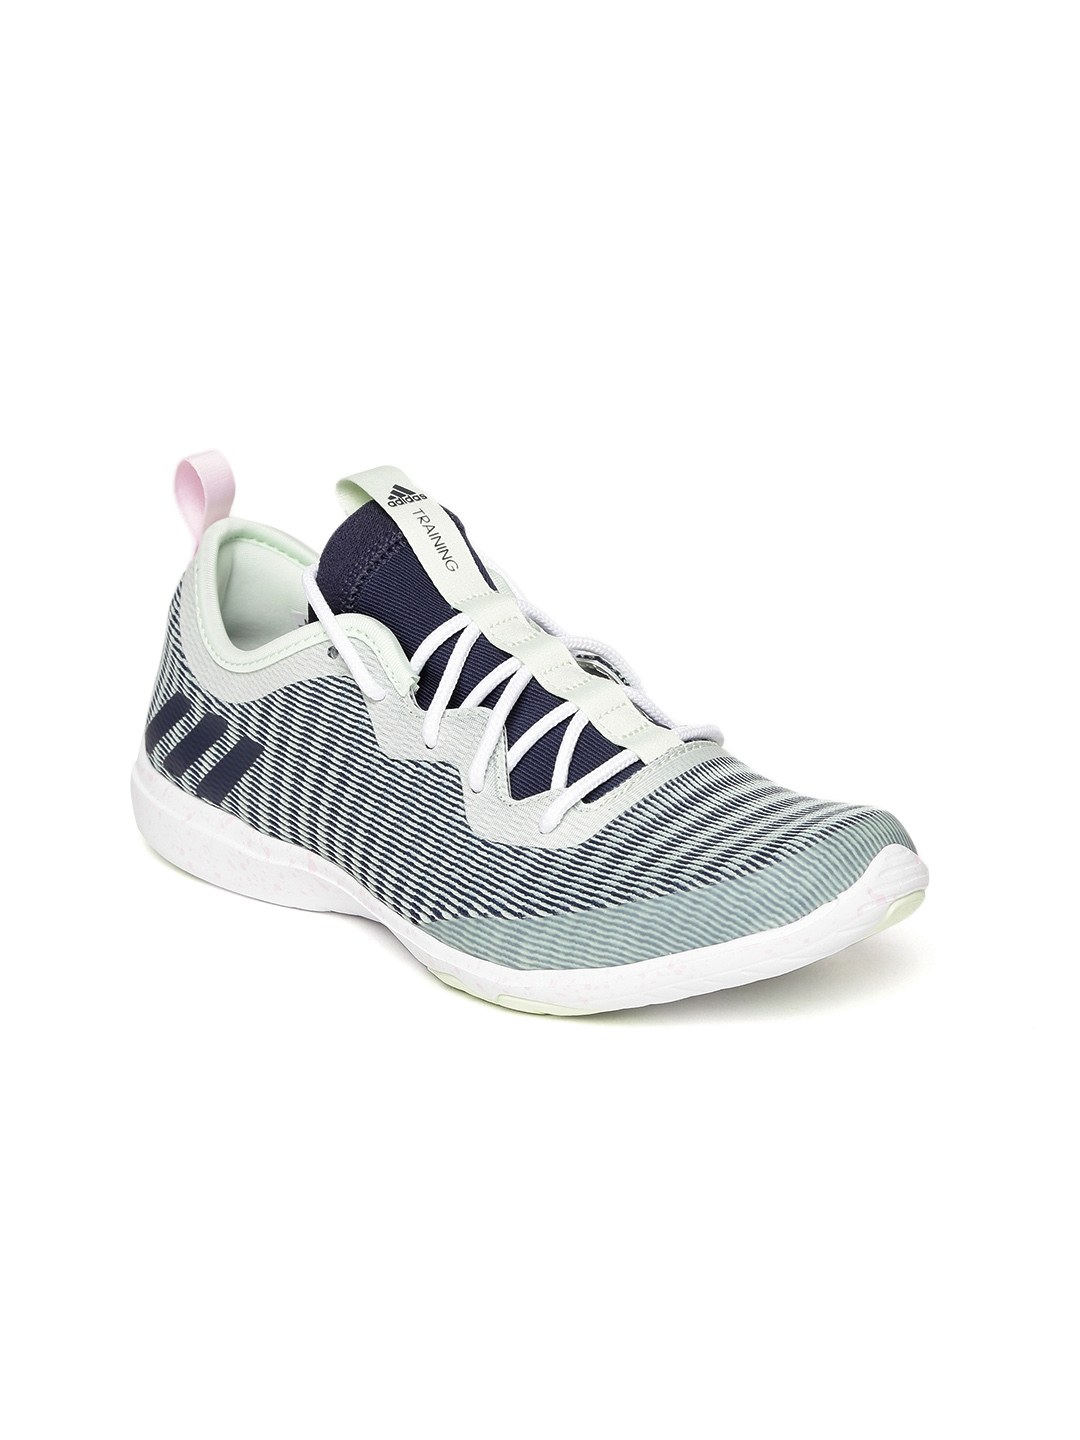 85fc07ff54d Buy ADIDAS Women Green   Navy CRAZYMOVE Training Shoes - Sports ...